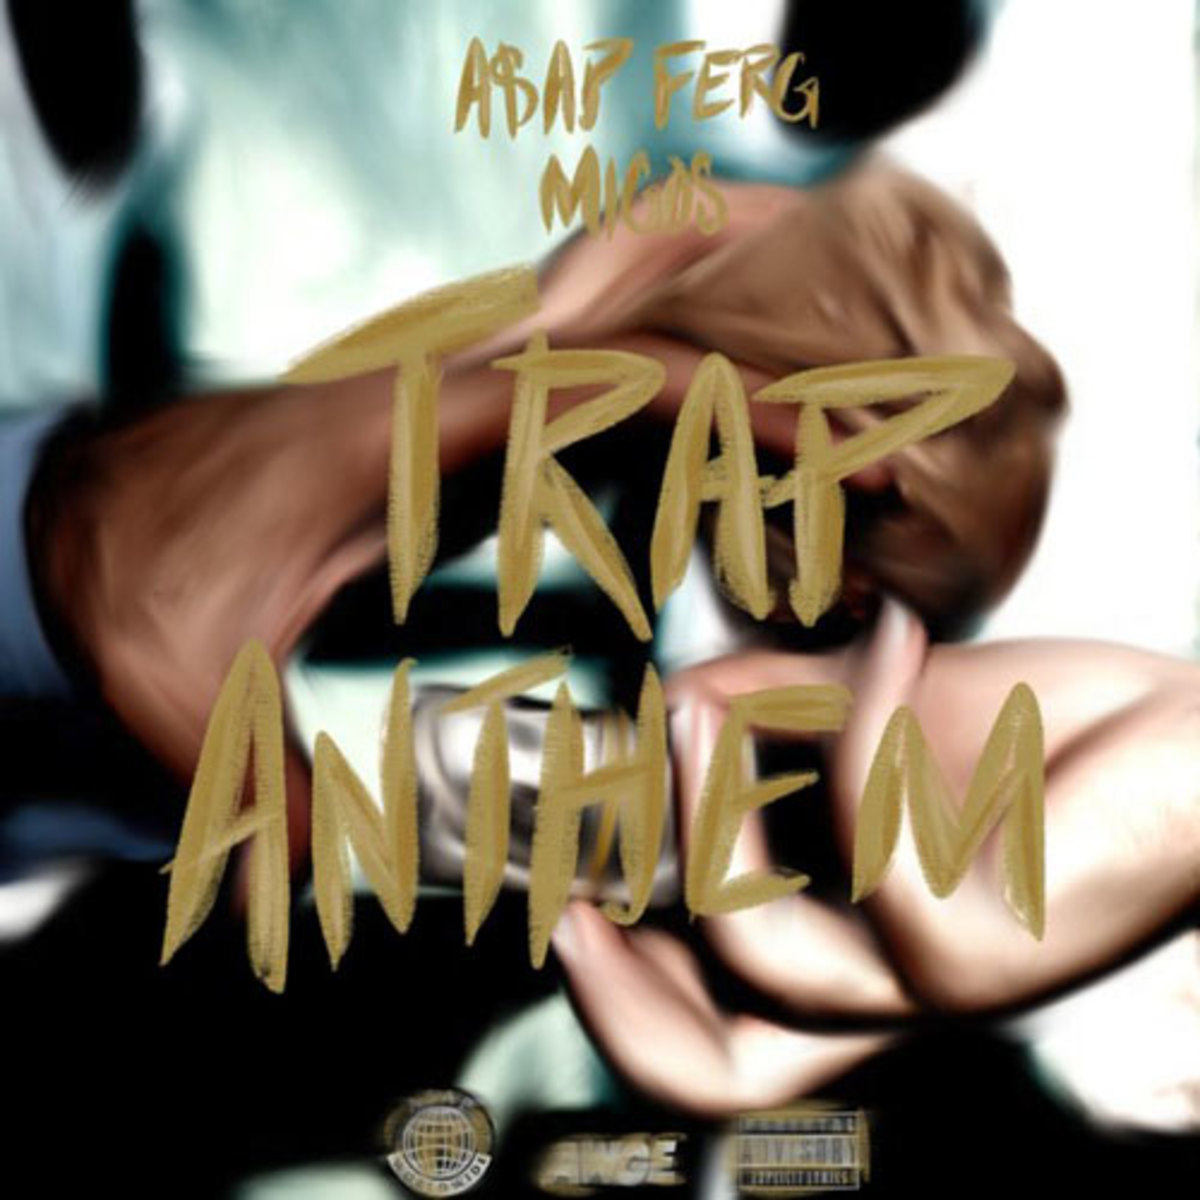 asap-ferg-trap-anthem.jpg